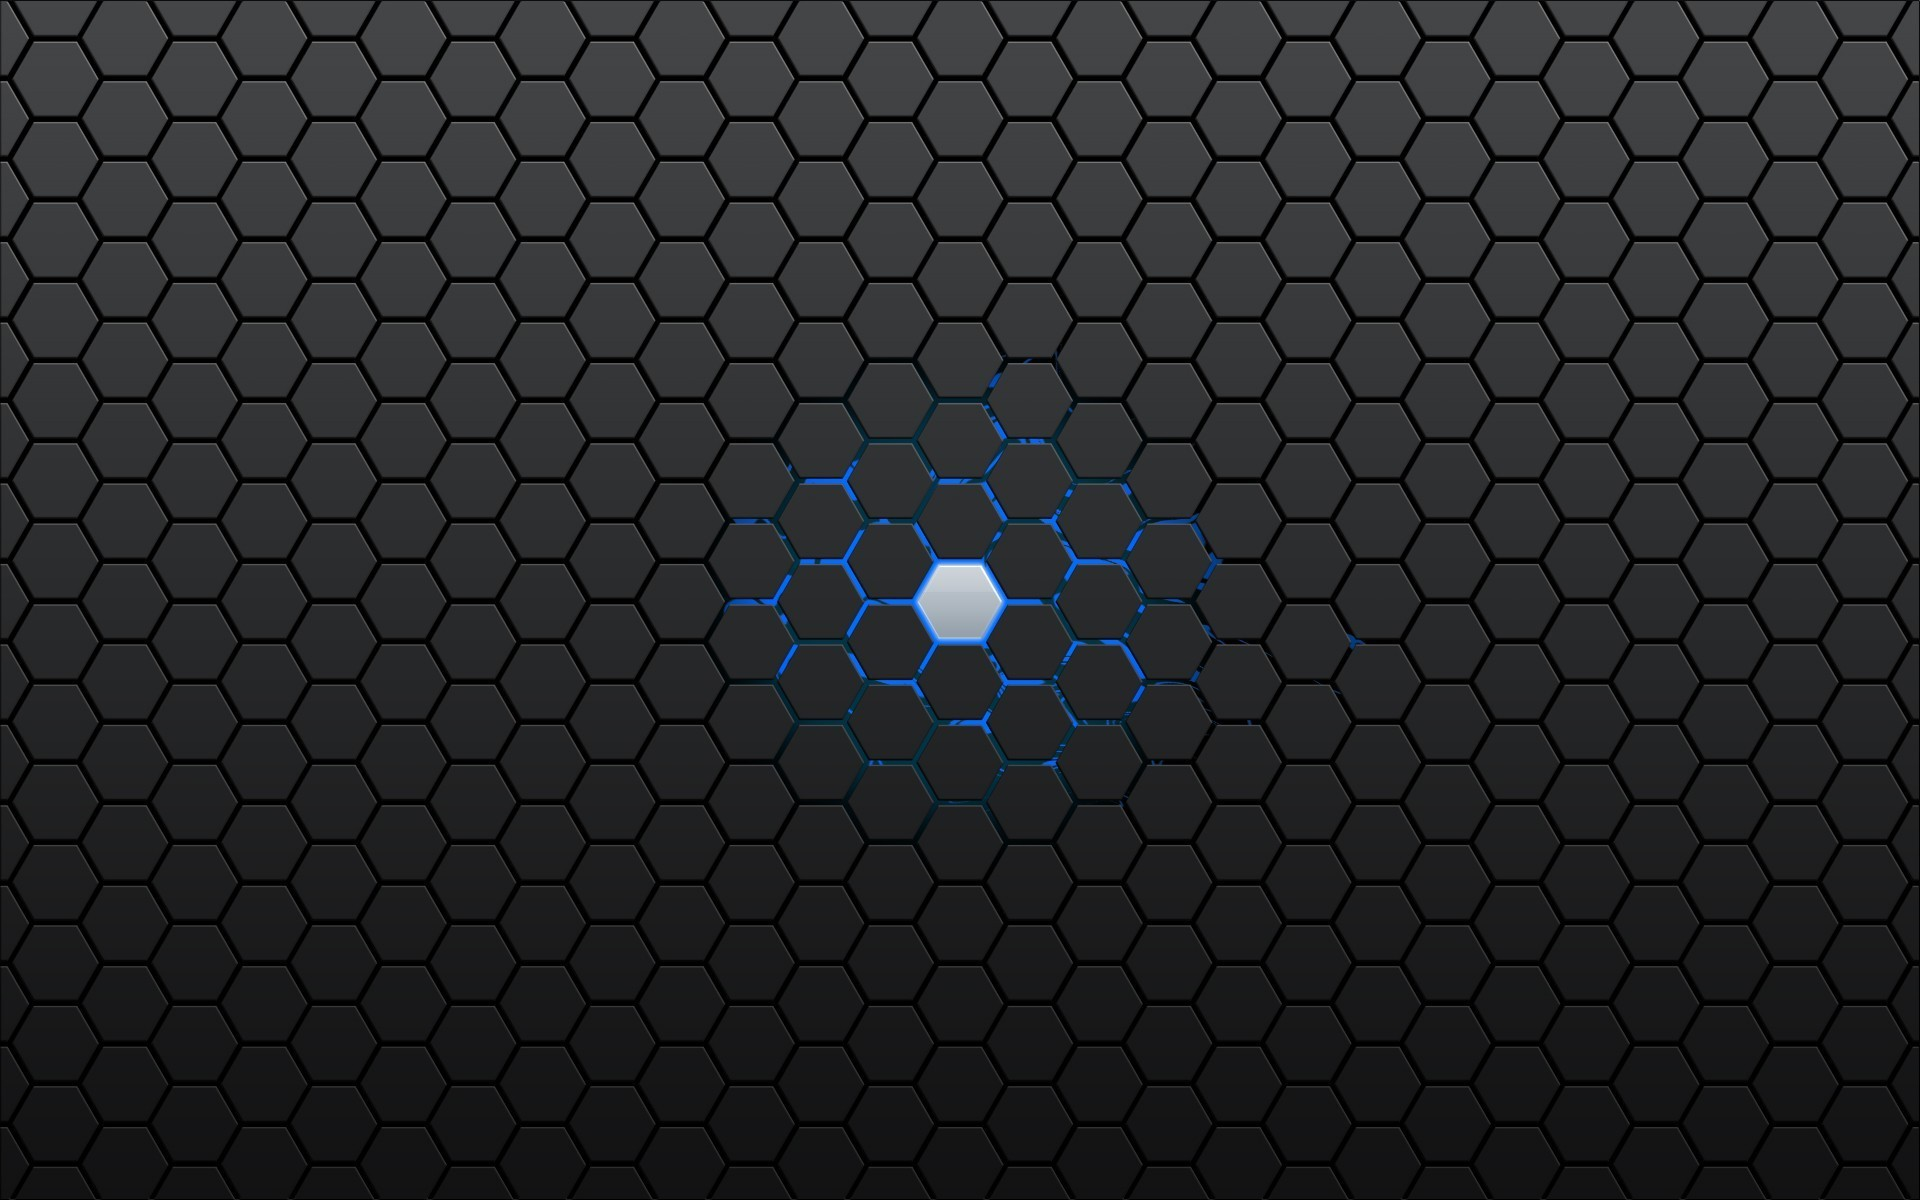 Android (operating System), Hexagon, Geometry, Blue, Gray, Artwork, Digital  Art, Abstract Wallpapers HD / Desktop and Mobile Backgrounds